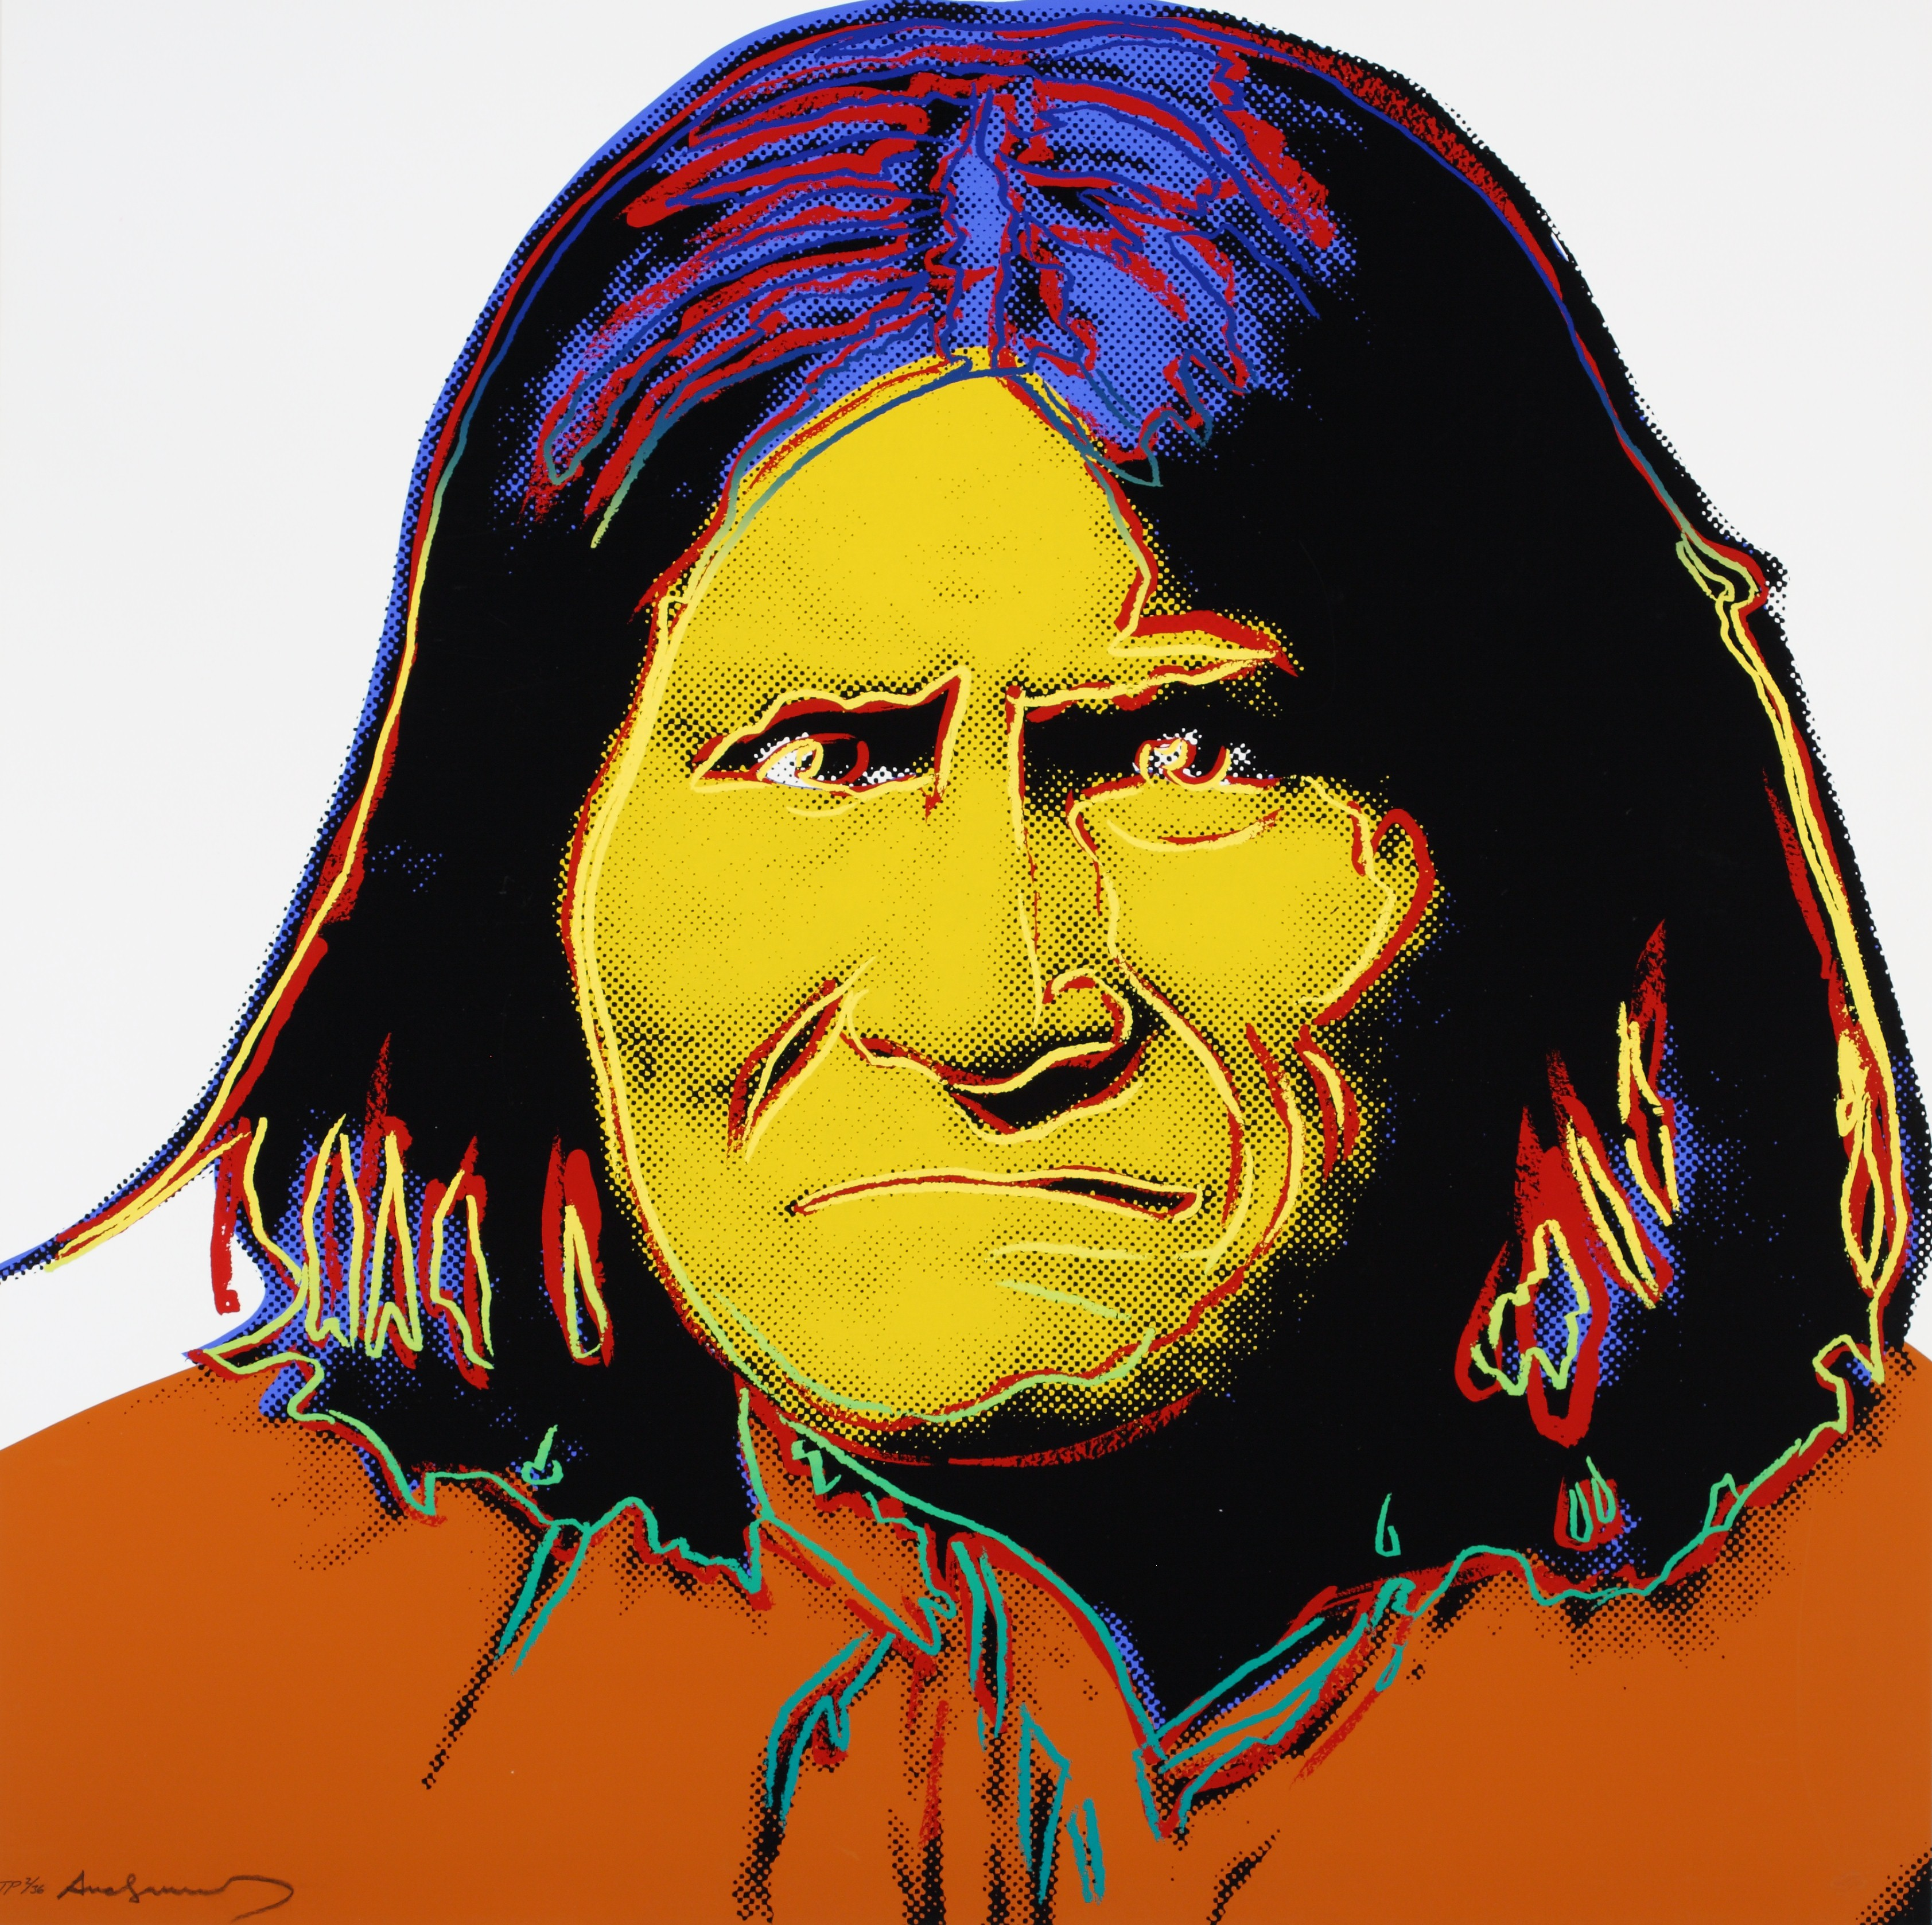 Geronimo by Andy Warhol